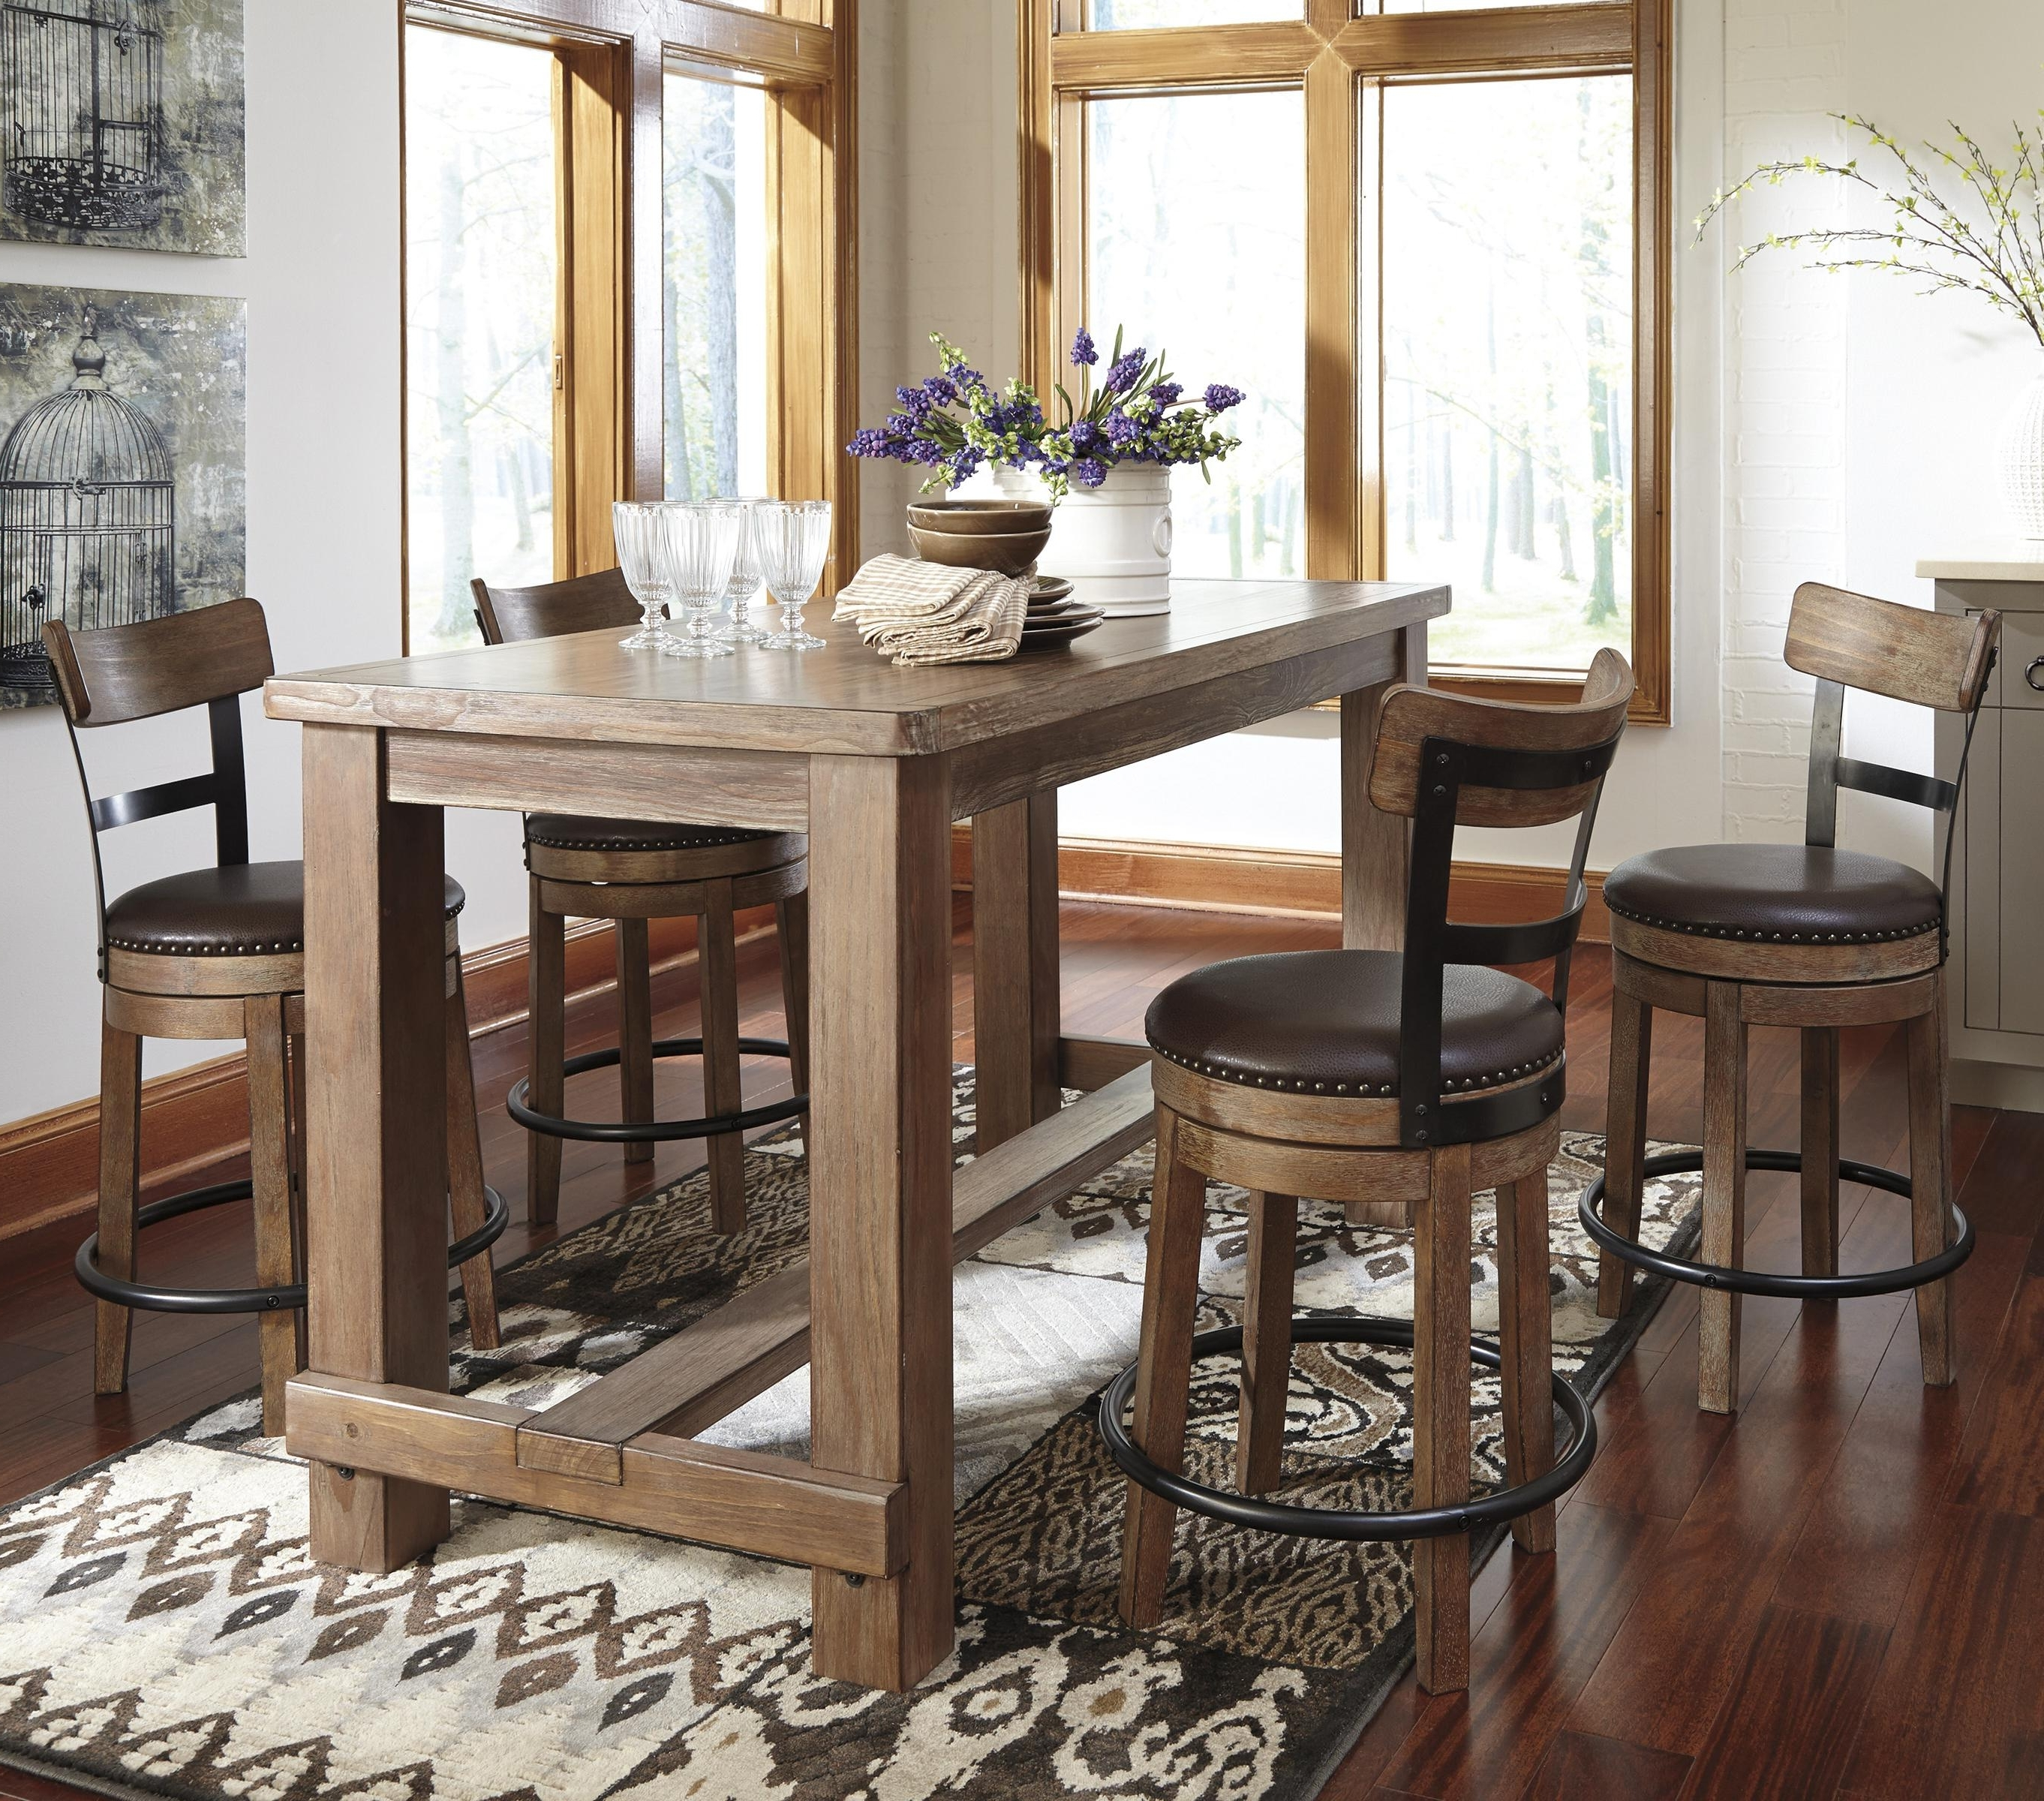 5 Piece Counter Table Set With Upholstered Swivel Stools With Wood Inside Famous Hyland 5 Piece Counter Sets With Stools (View 9 of 25)